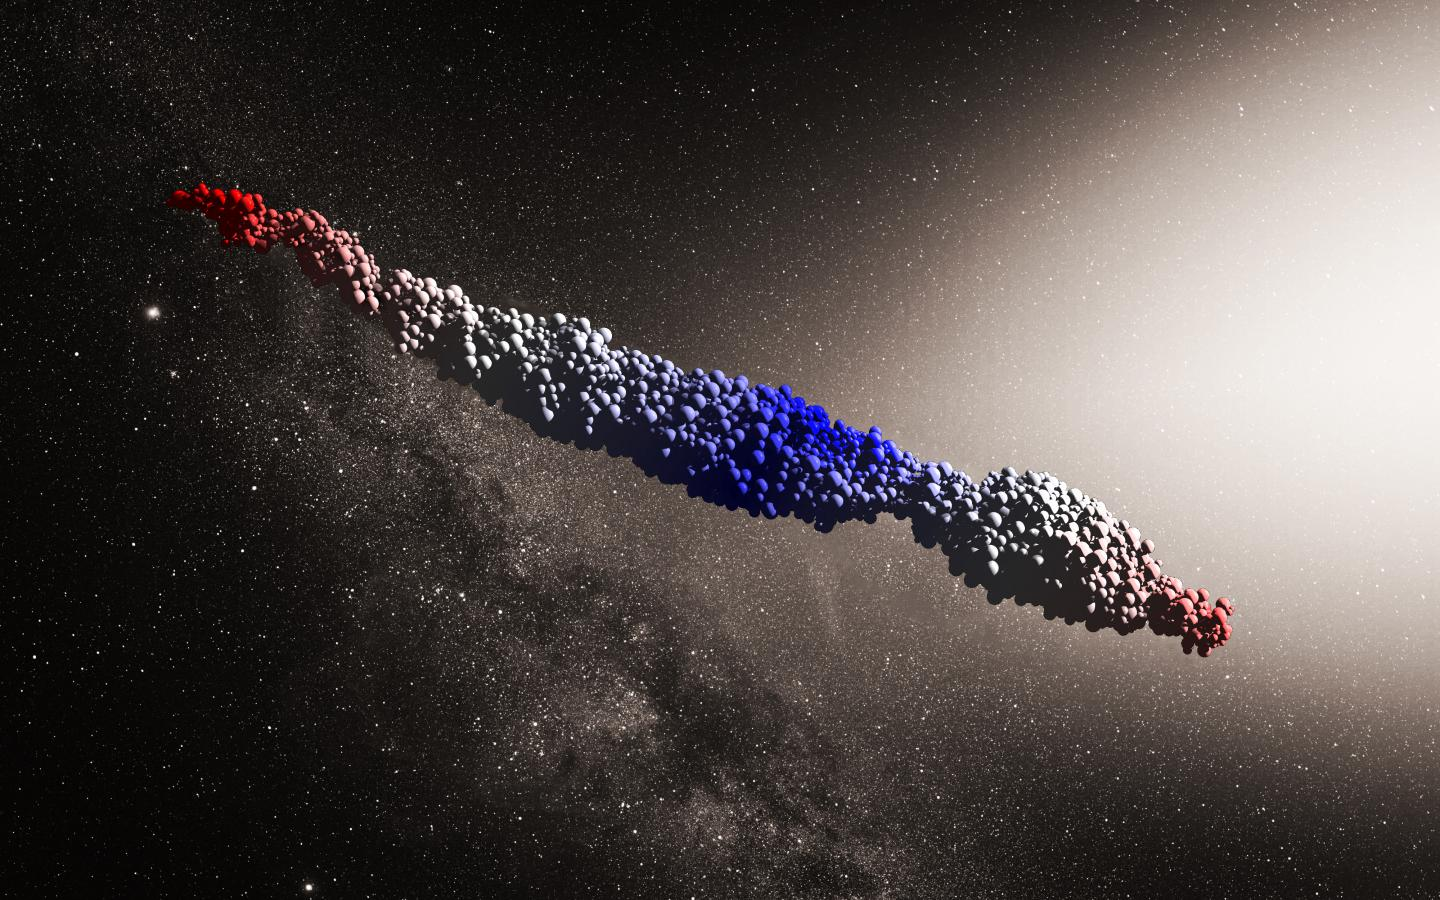 https://www.media.inaf.it/wp-content/uploads/2020/04/Oumuamua-like-object-produced-by-a-simulation.jpg